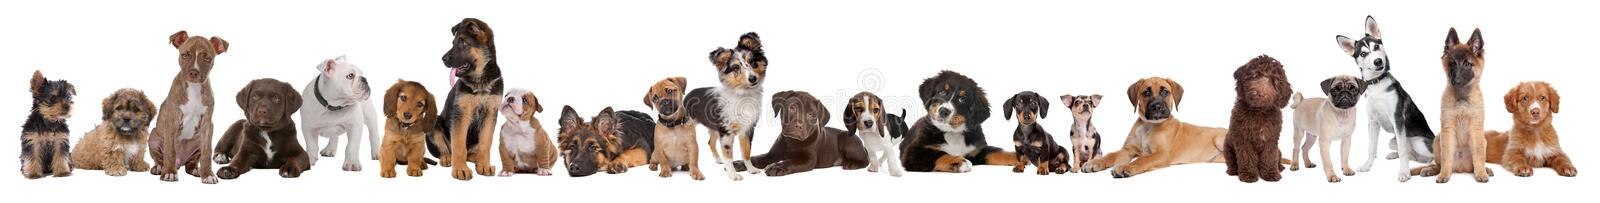 Download 22 puppy dogs in a row stock photo. Image of bull, mutt - 18802676